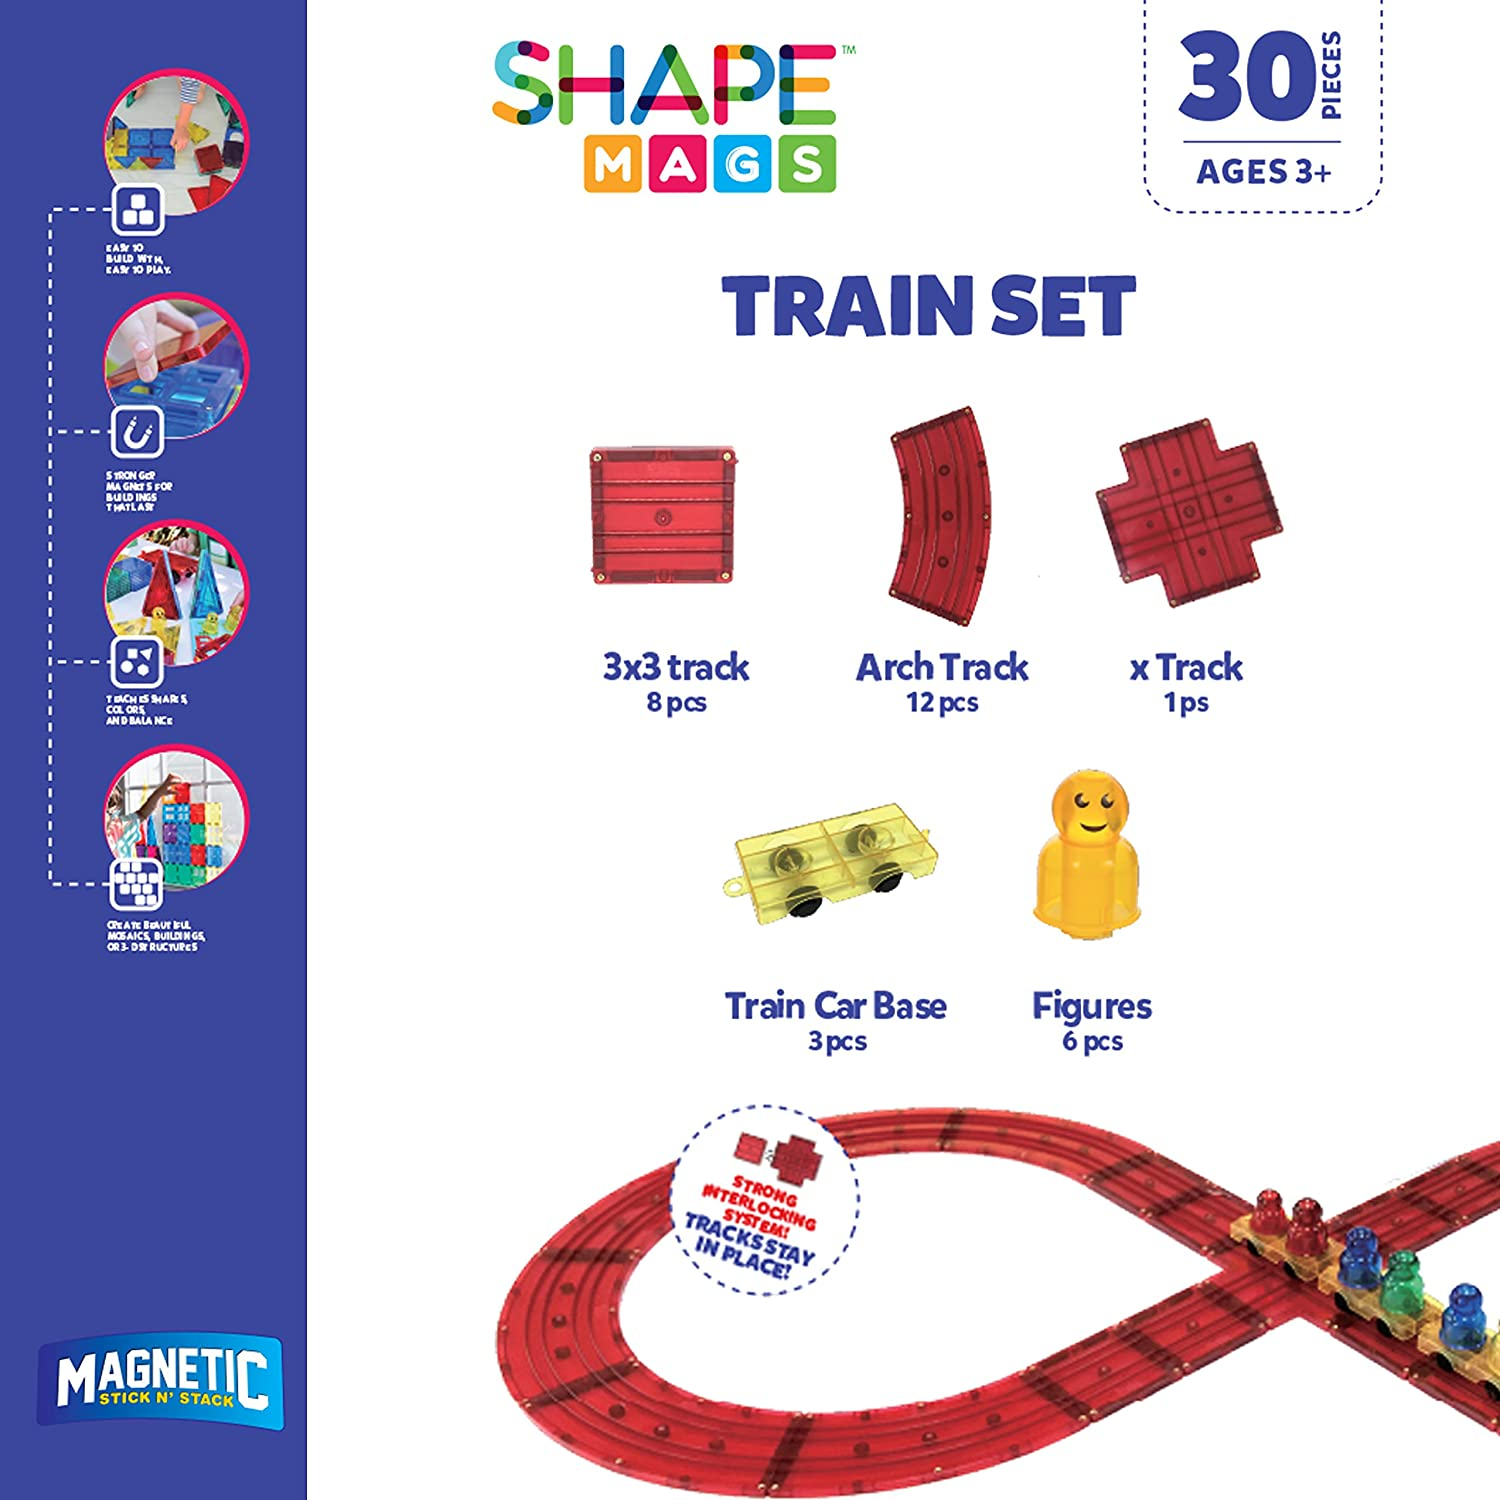 3 Train Bases and 6 Figures Made with Power+Magnets Magnetic Stick N Stack Award Winning 30 Piece Train Set Includes Train Track Tiles